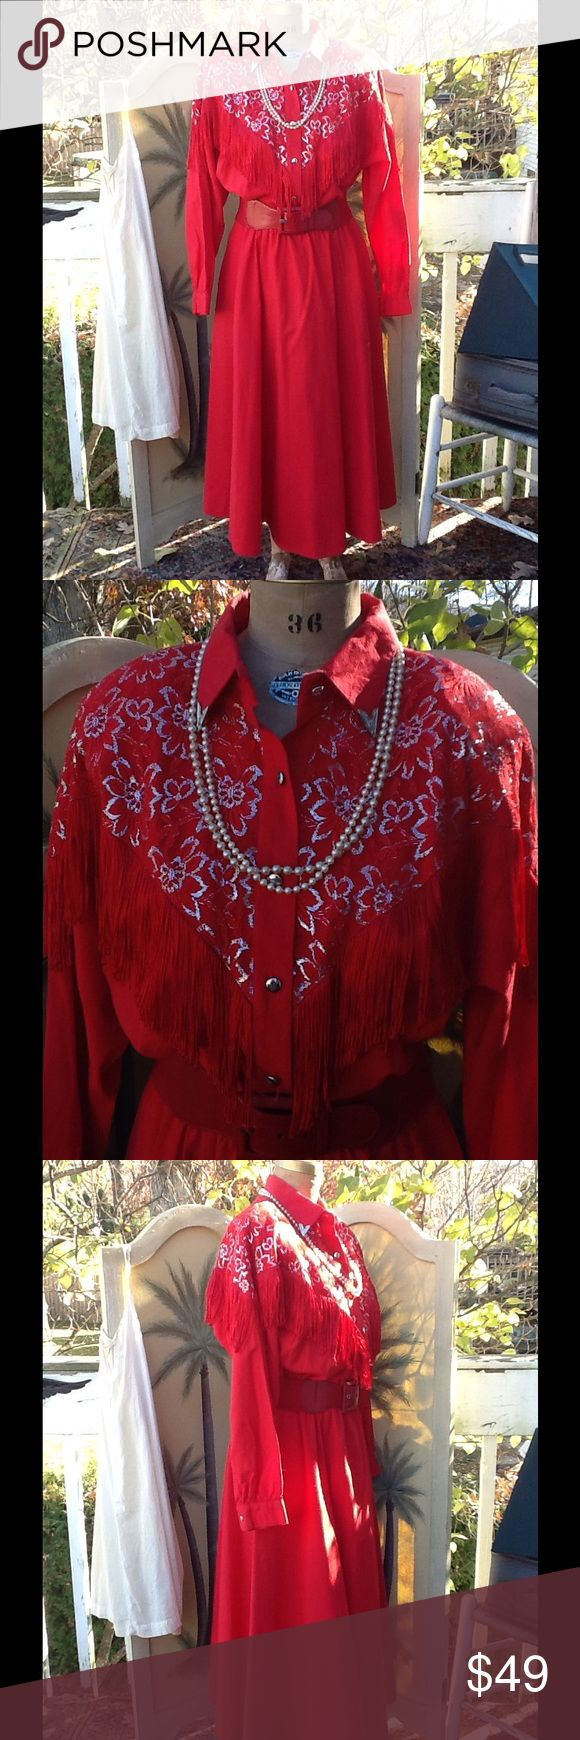 VTG LILIA SMITH EXCLUSIVE WESTERN FRINGE DRESS This is beautiful,it's in a gorgeous lipstick red 100% cotton,the bodice portion has a lace flower portion with gold metallic thread red silky fringe on front and back metal collar tips 5 button front long button cuffed sleeves,elastic waist and full skirt portion...perfect dress for square dancing just throw on a pair of cowboy boots and hat and your ready!!! It's by Lilia Smith exclusive!!! It's in EUC! Few small spots sz 20 made in USA…